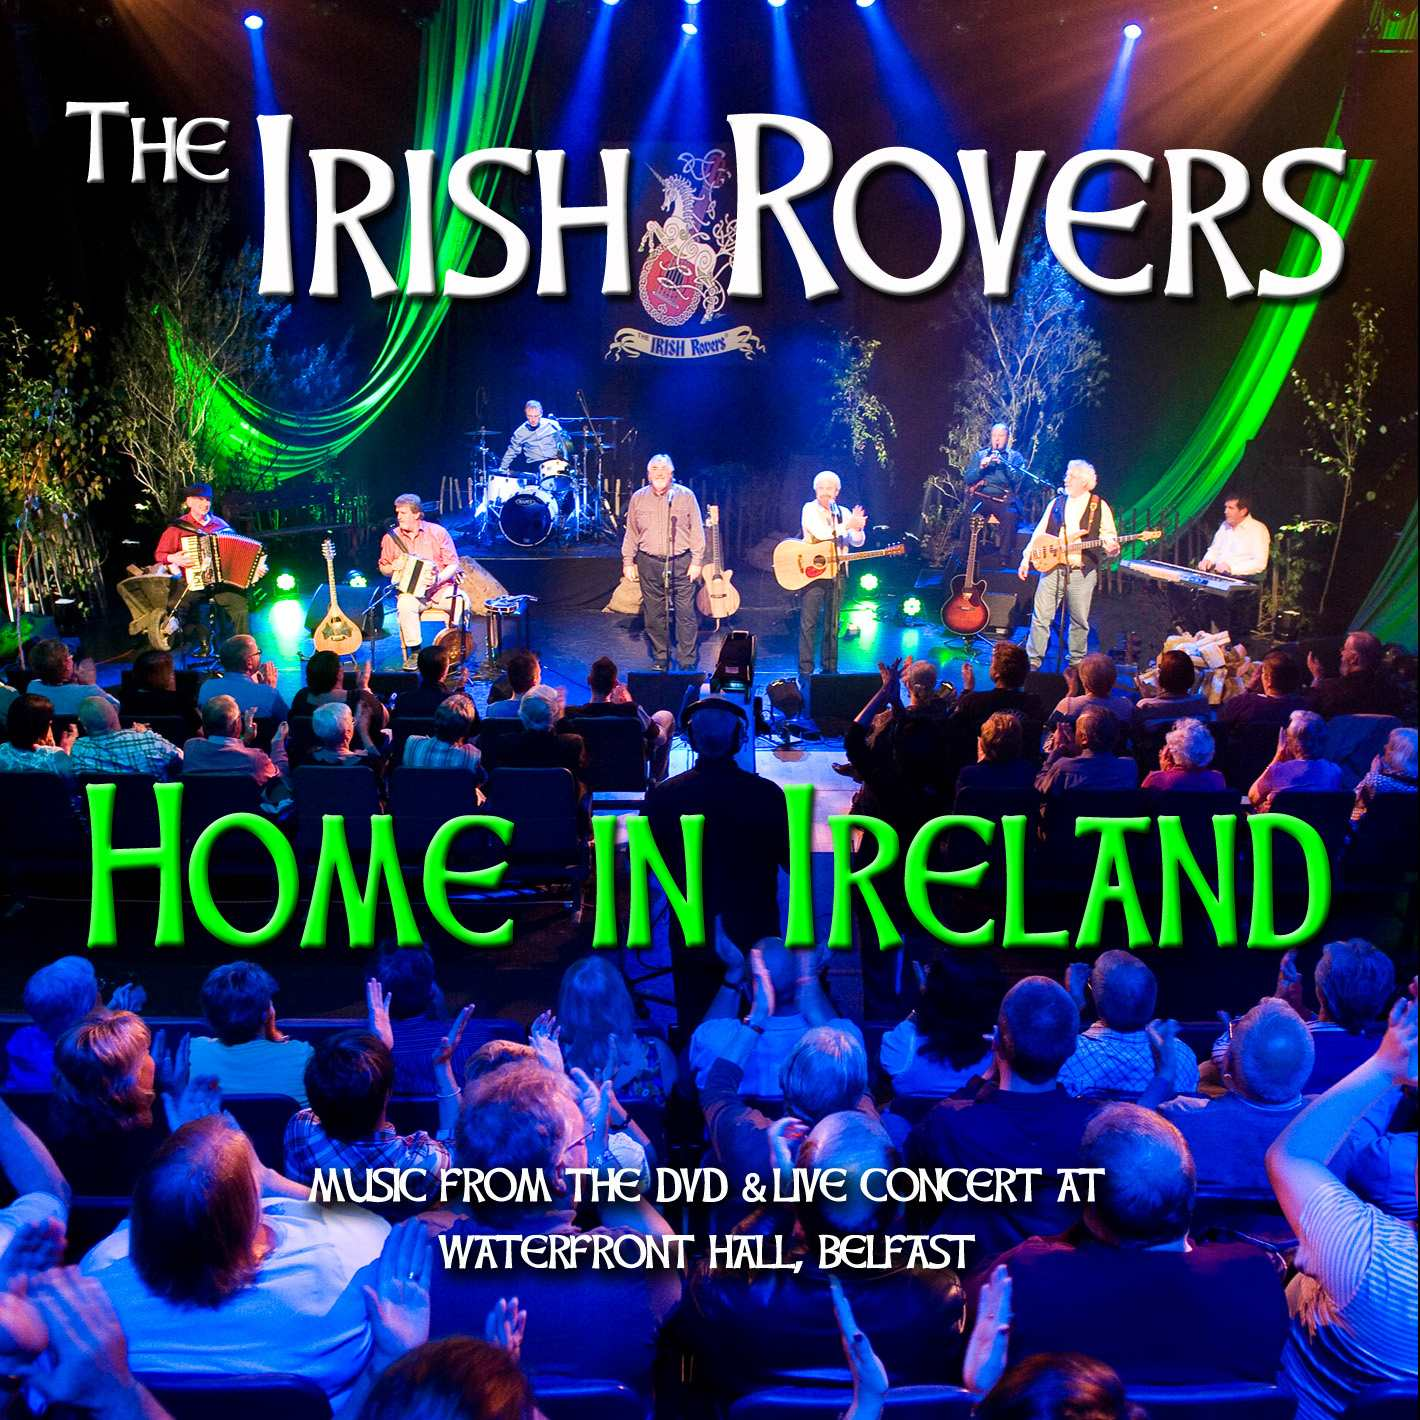 The Irish Rovers album cover - Home in Ireland